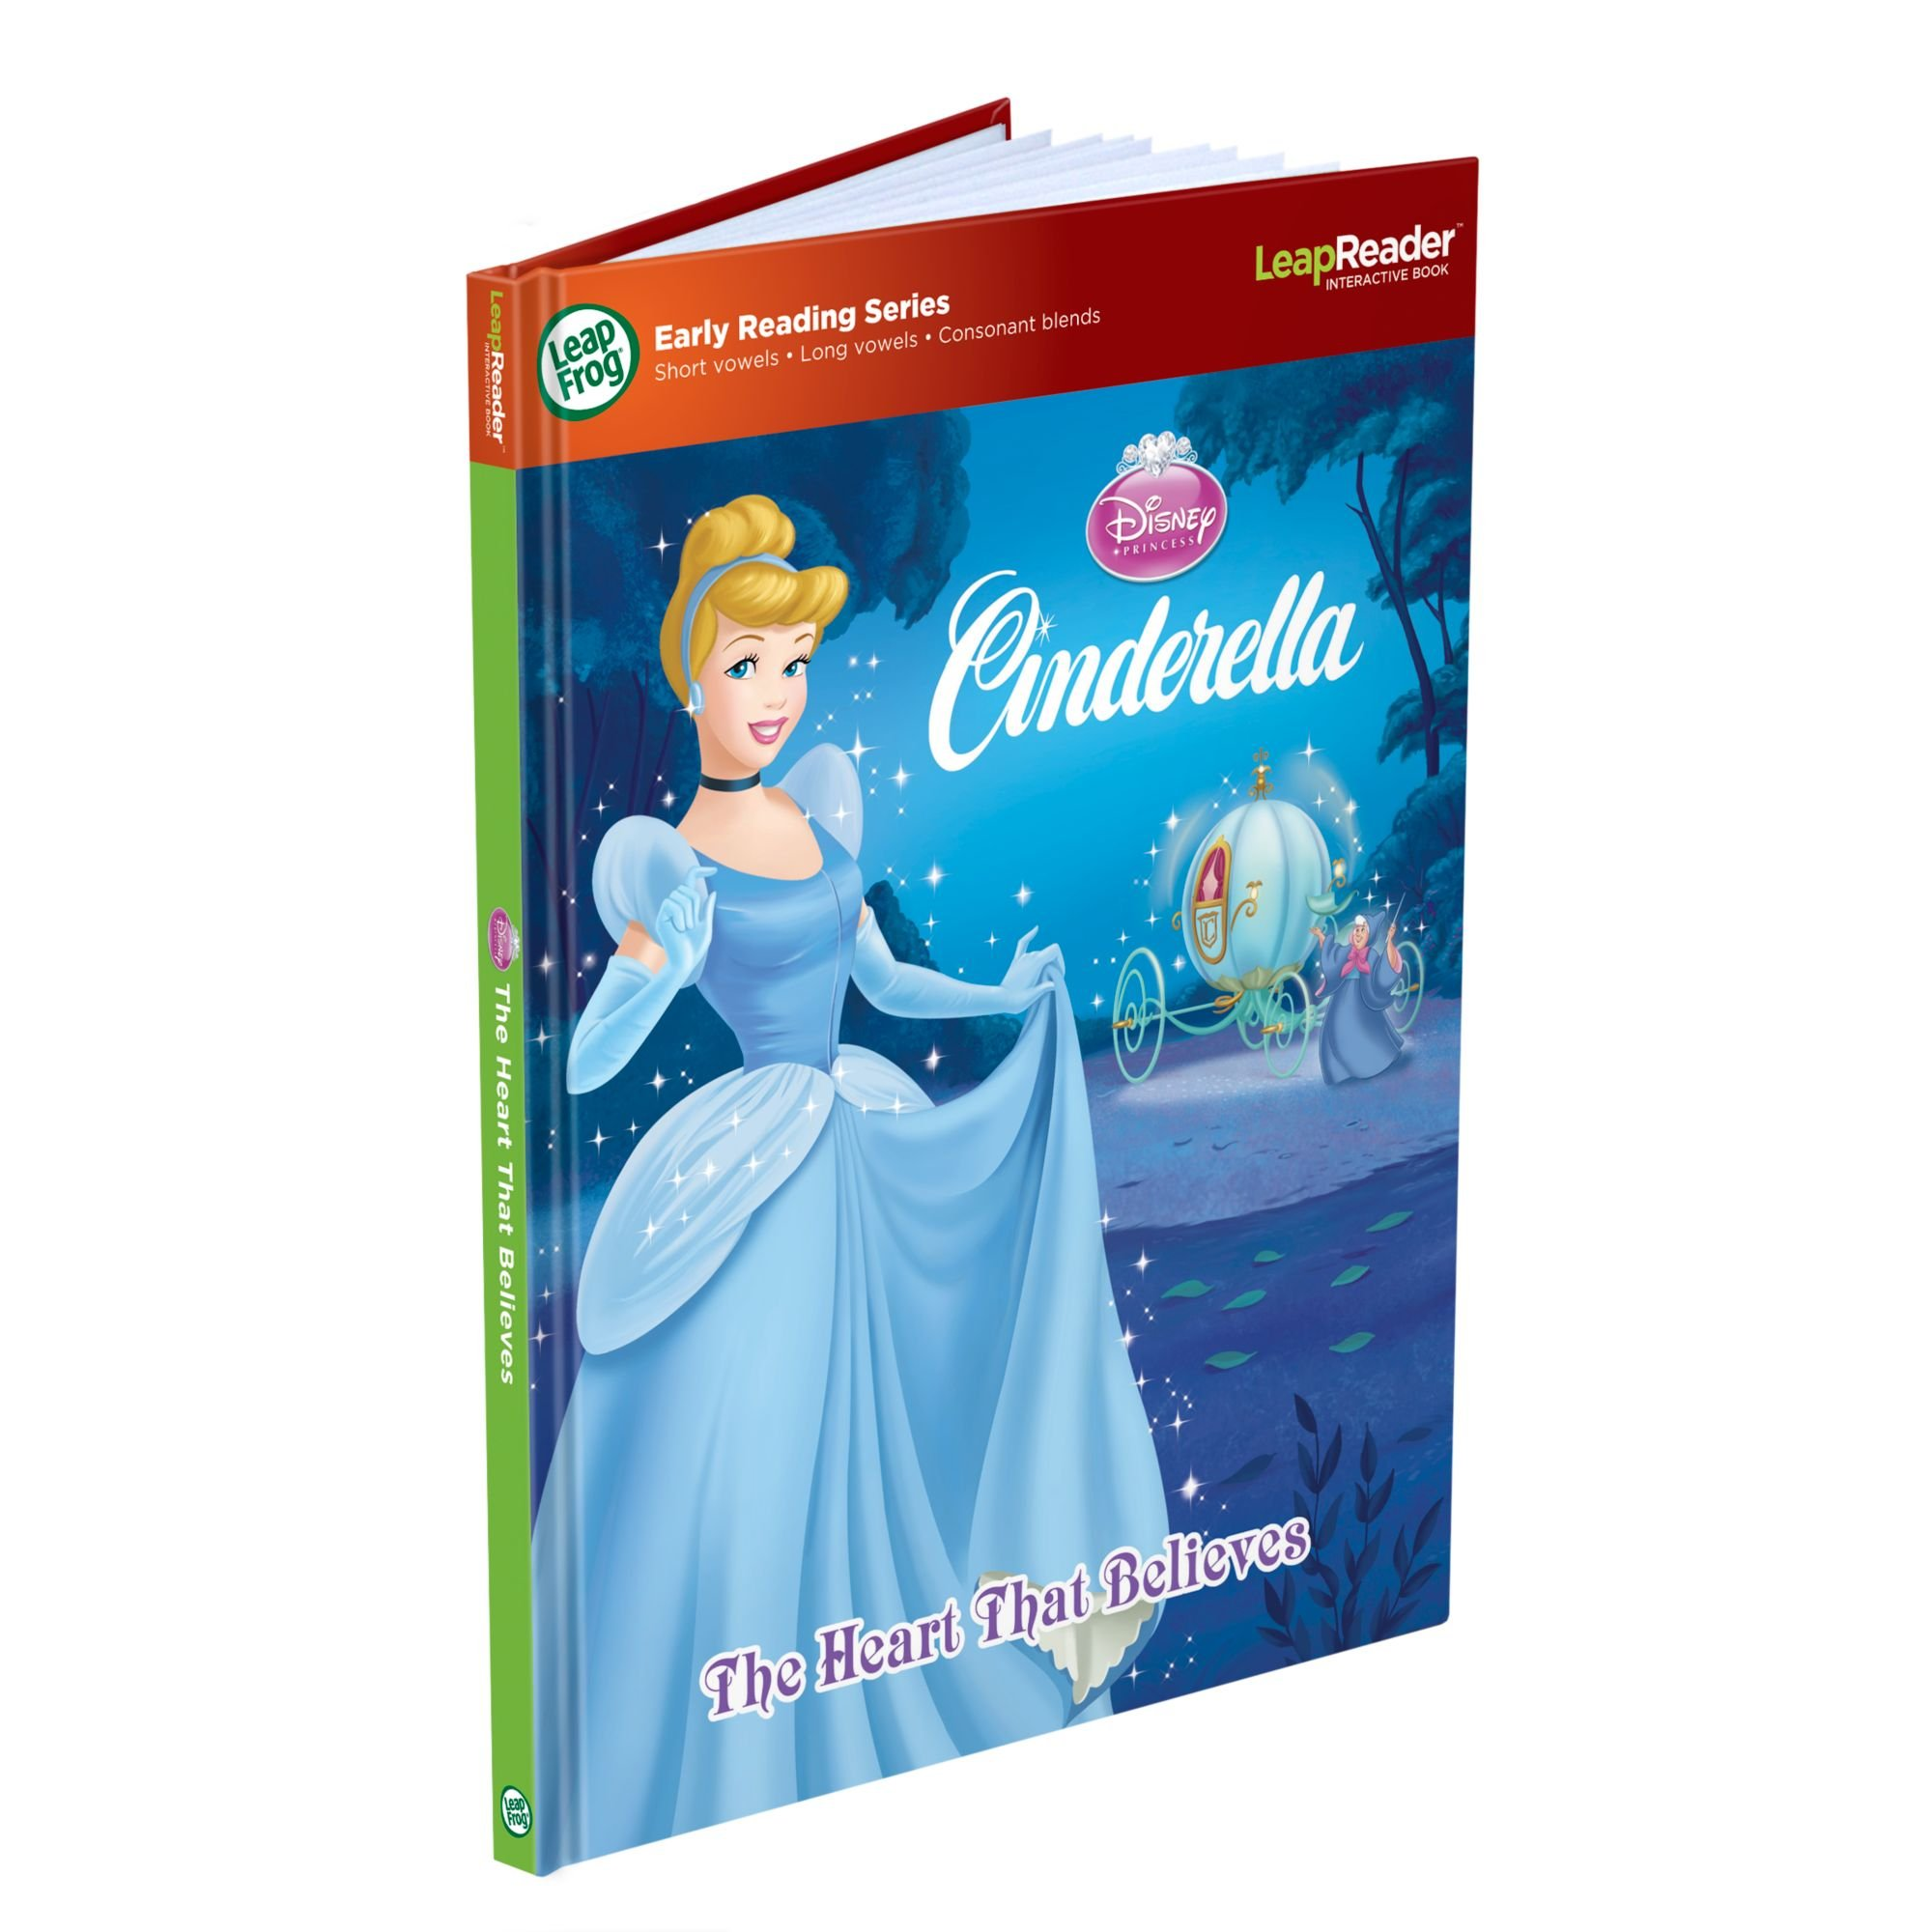 LeapFrog LeapReader Book: Disney Cinderella: The Heart That Believes (works with Tag) by LeapFrog (Image #8)